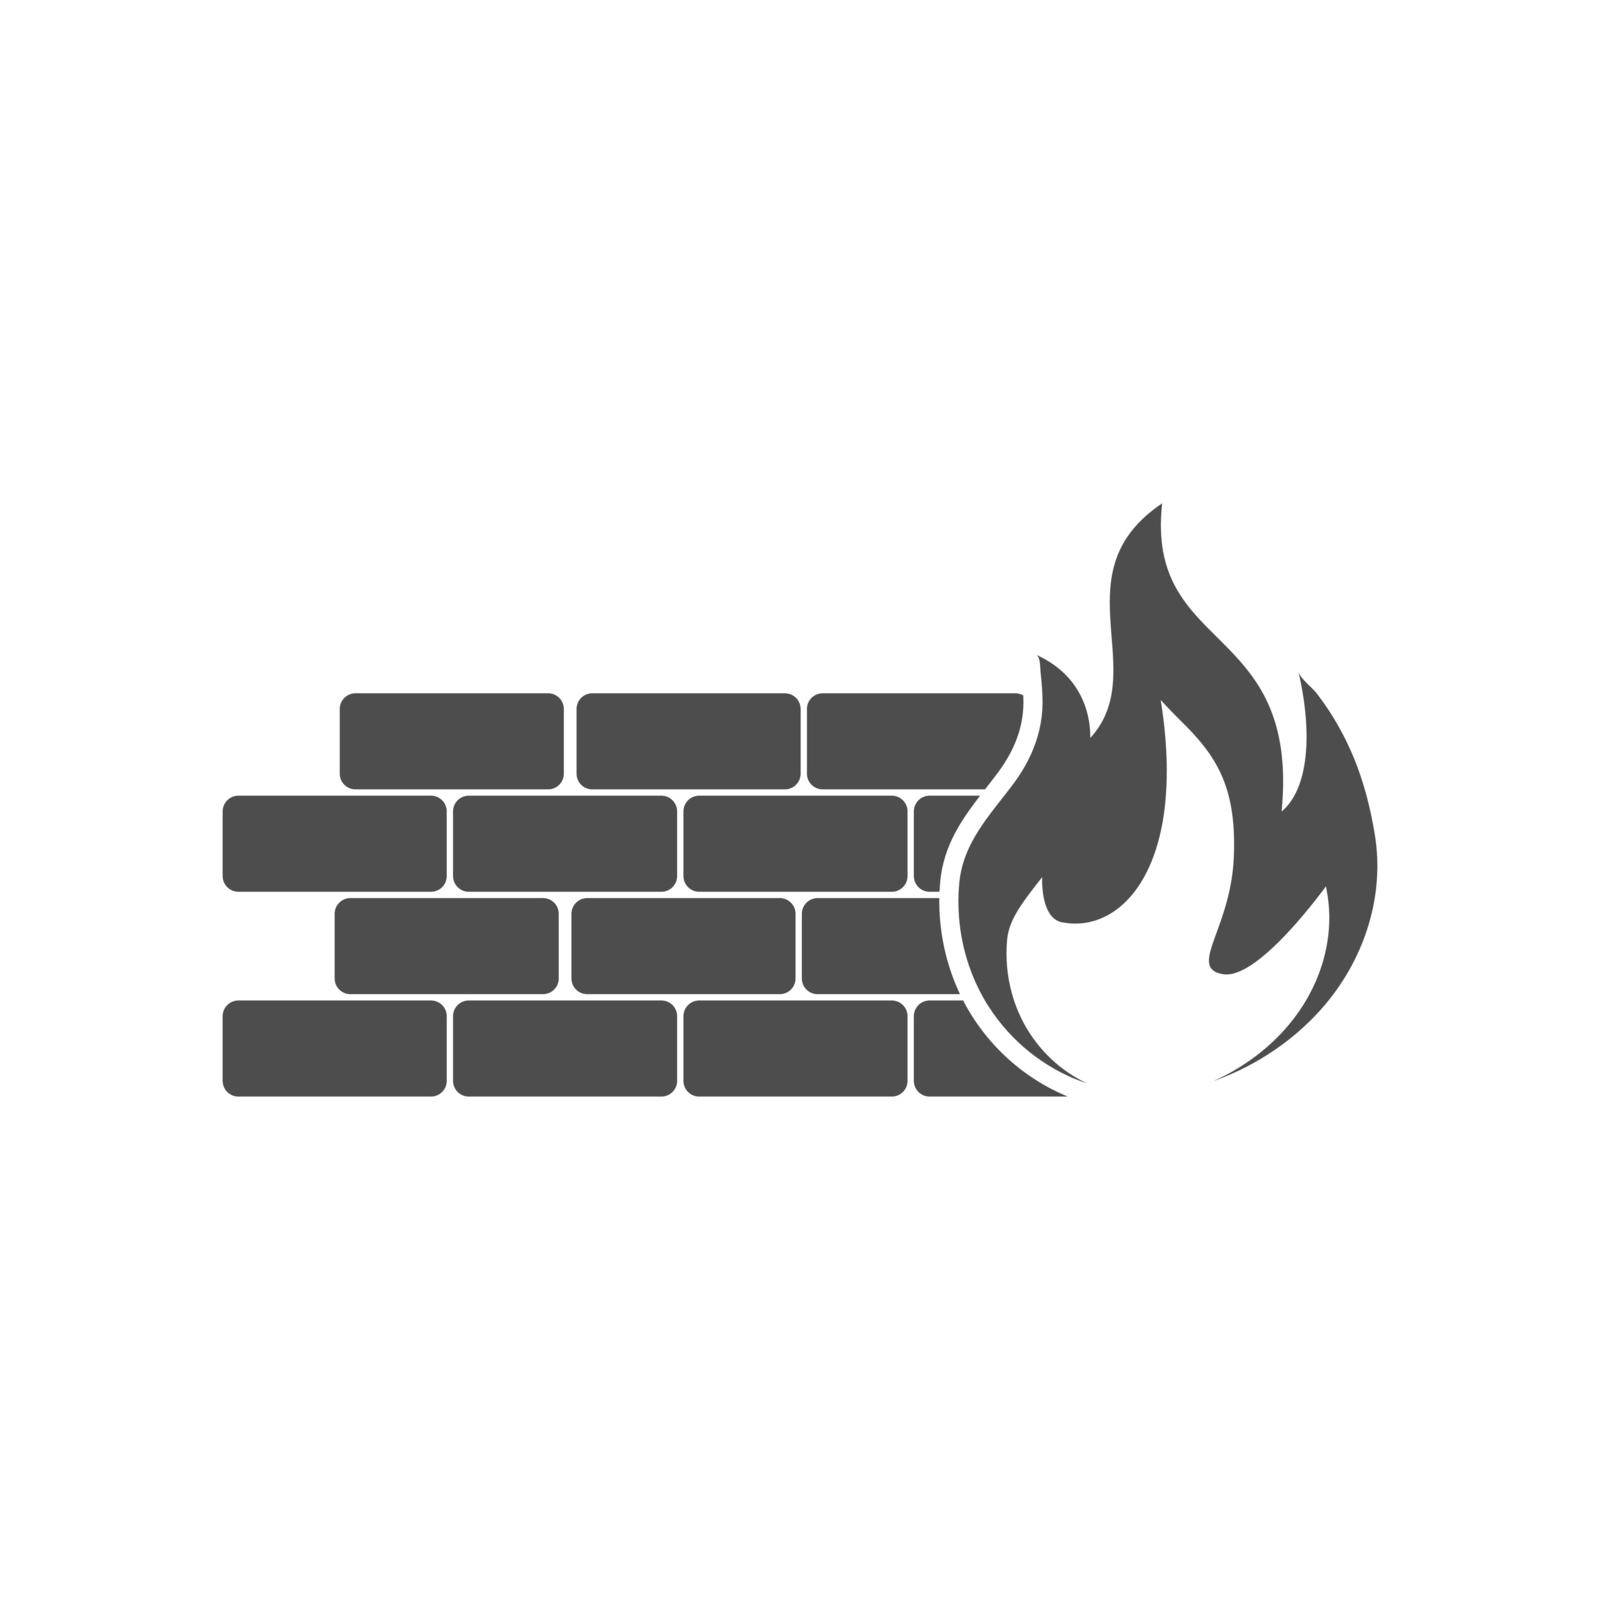 Firewall Icon. Vector icon isolated on a white background. Flat style